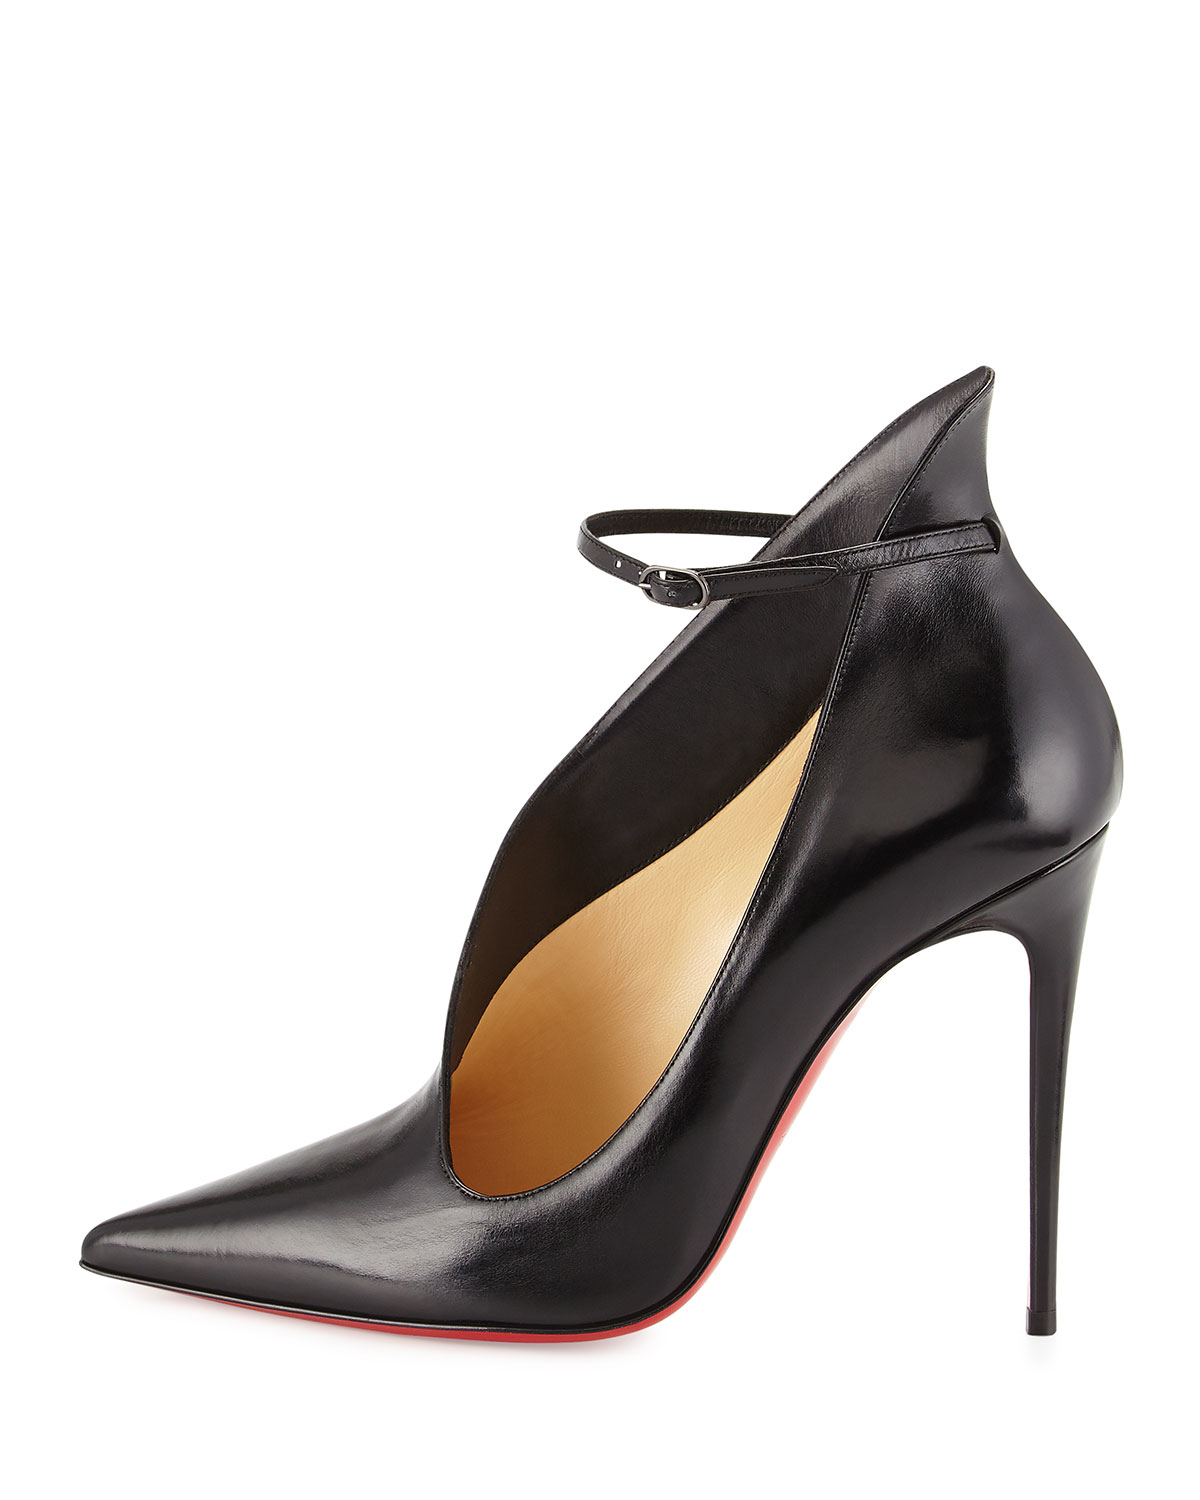 Christian louboutin Vampydoly Red Sole Leather Half-Bootie in ...